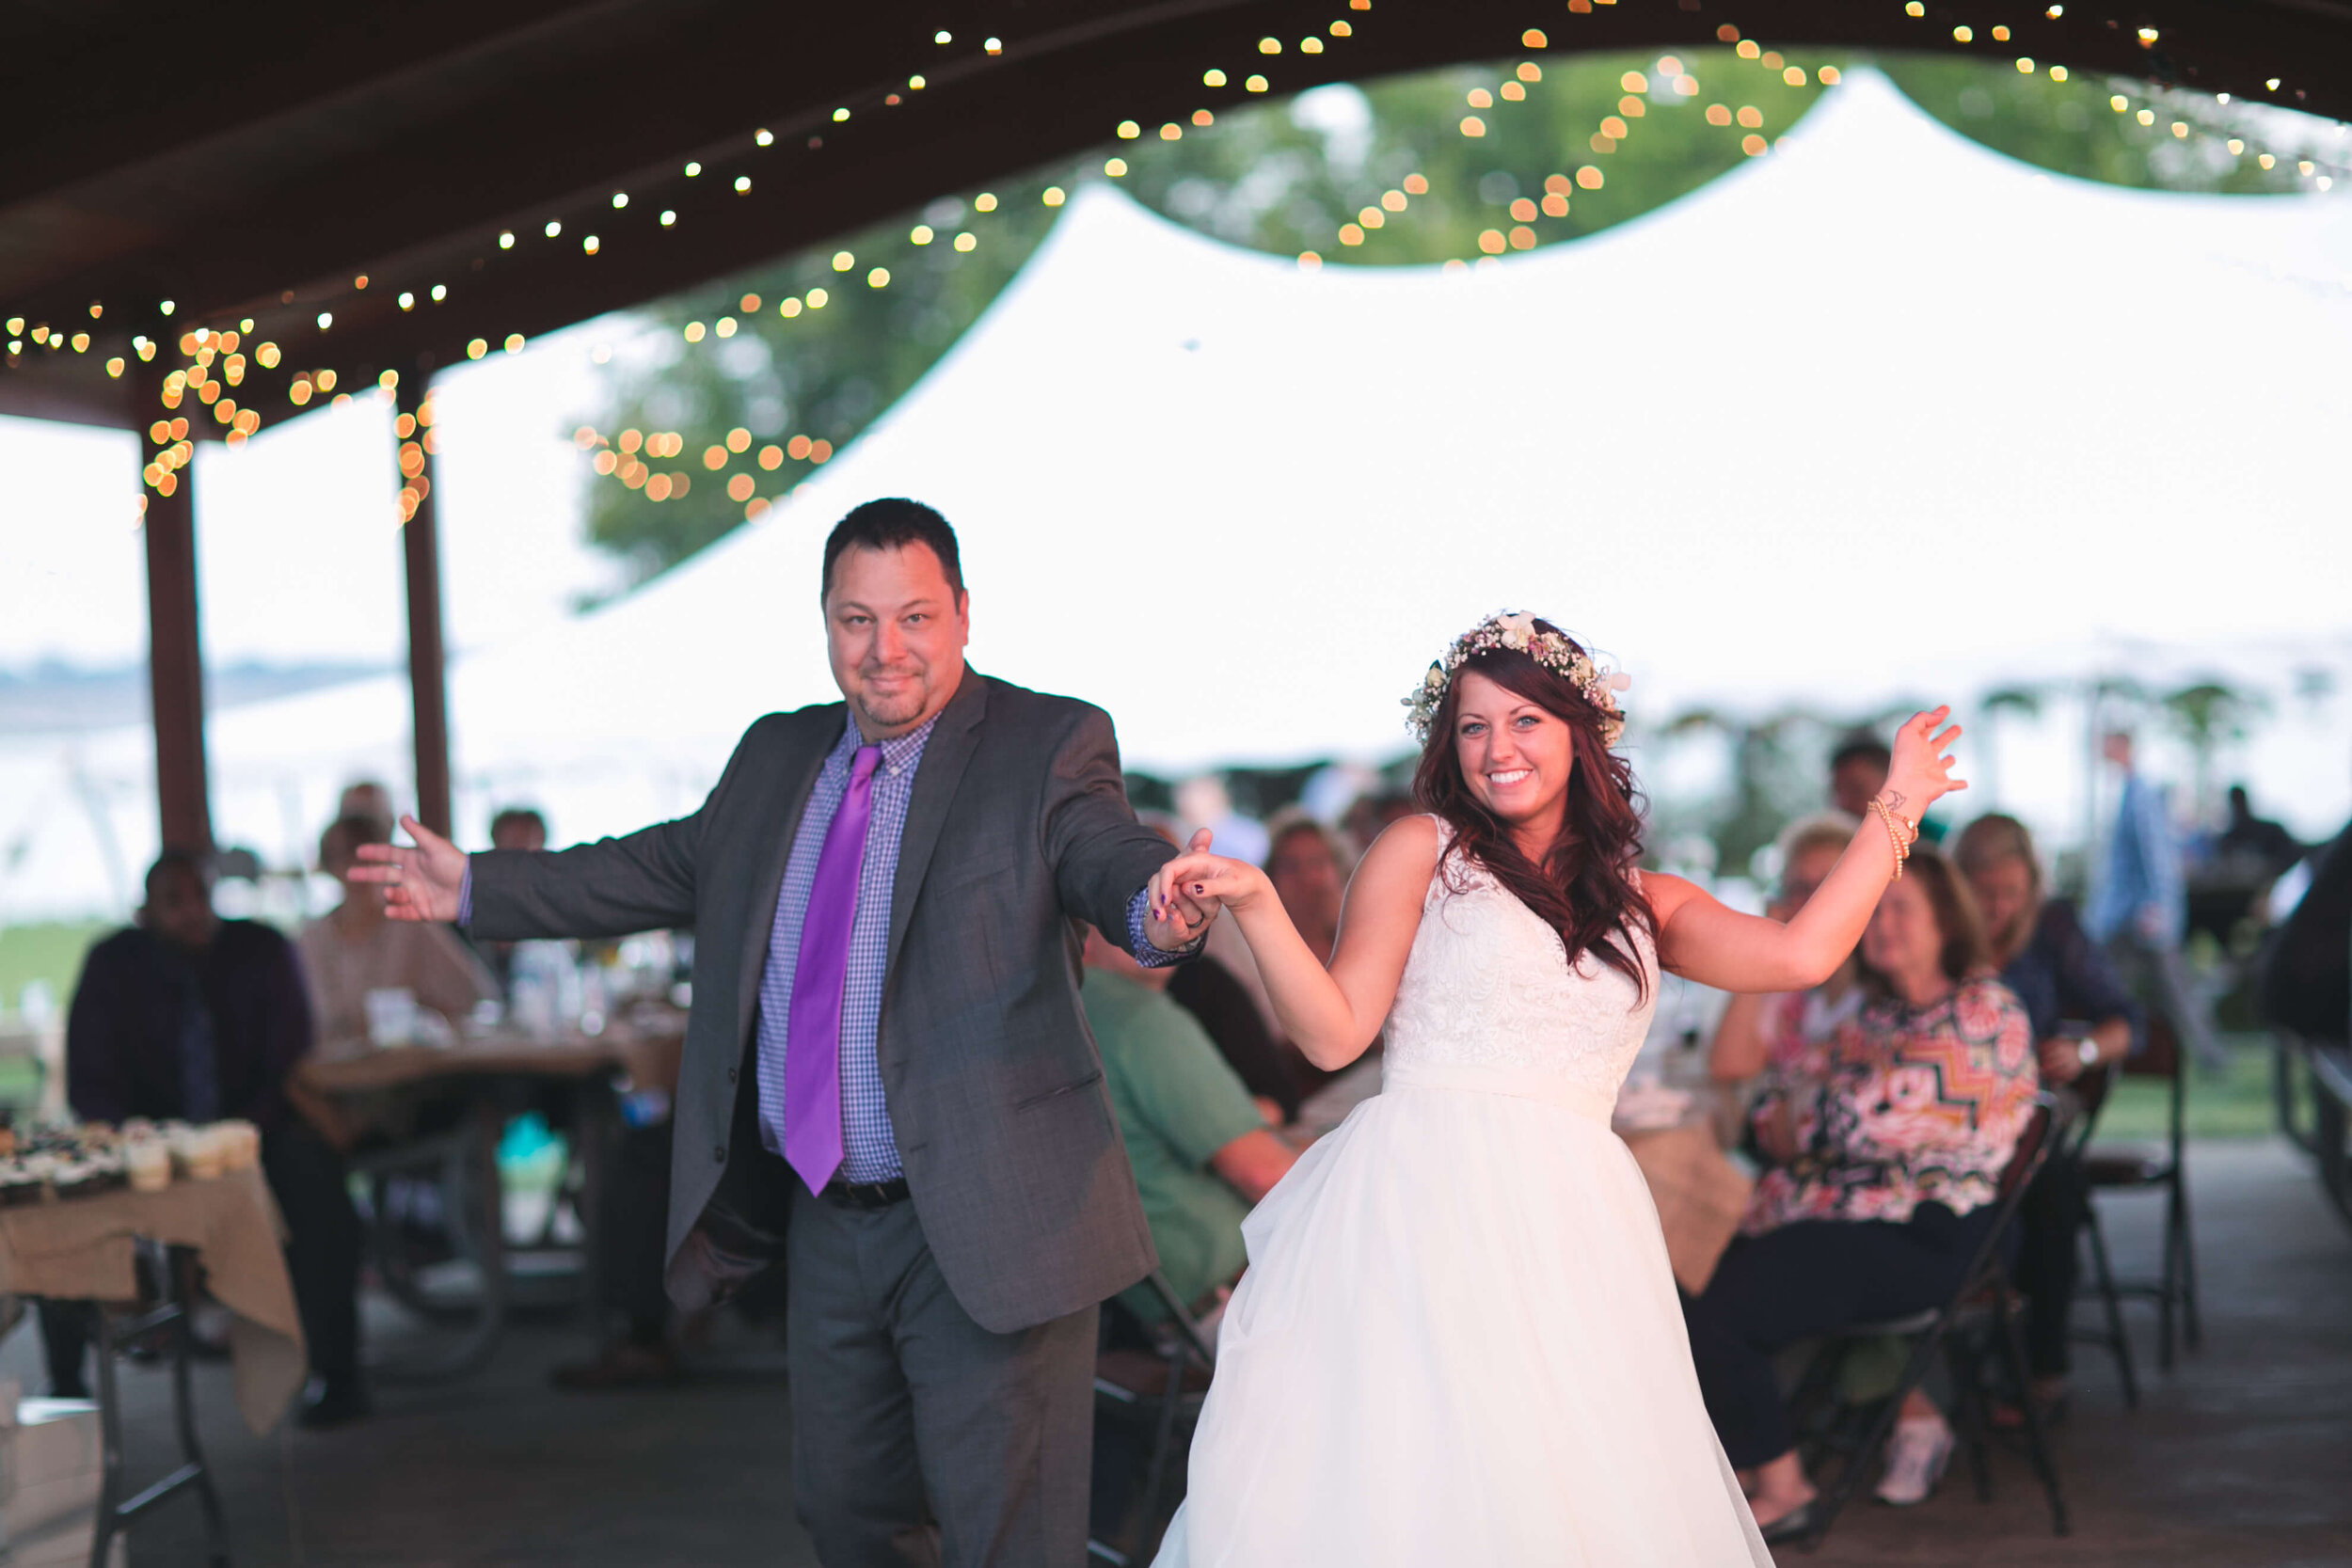 My Dad and I obviously had to show off on the dance floor!